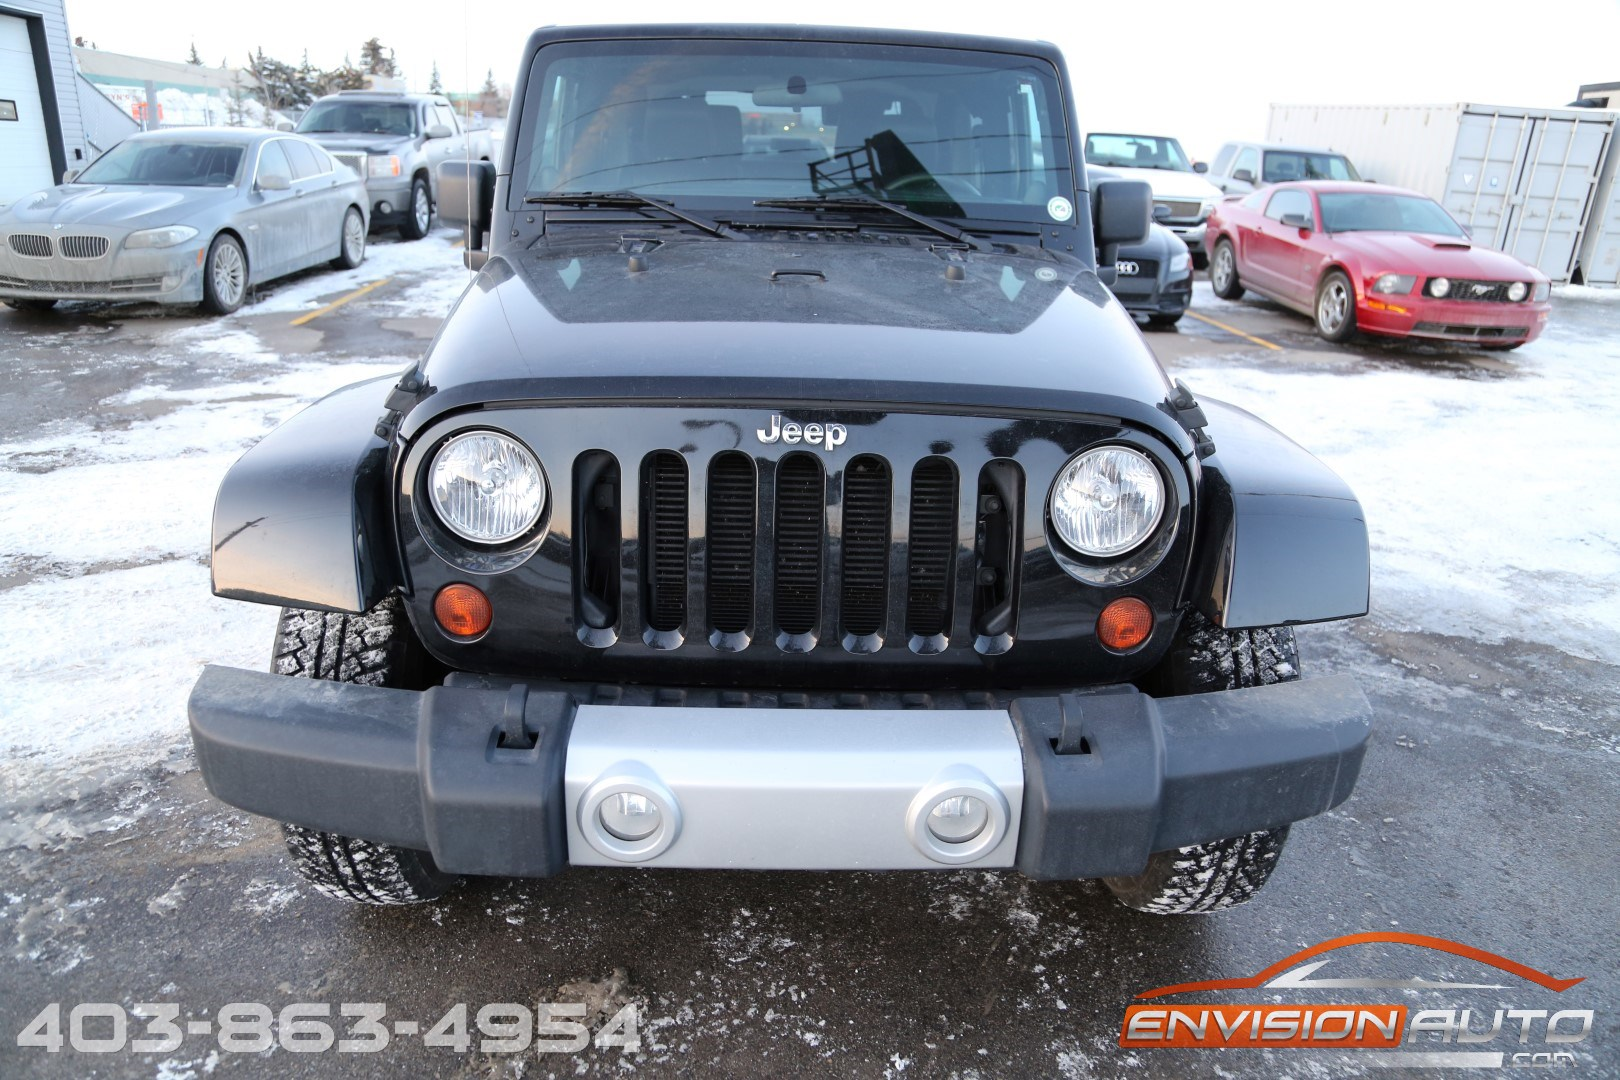 2012 jeep wrangler sahara 4 4 2 door only 43k kms envision auto calgary highline luxury. Black Bedroom Furniture Sets. Home Design Ideas